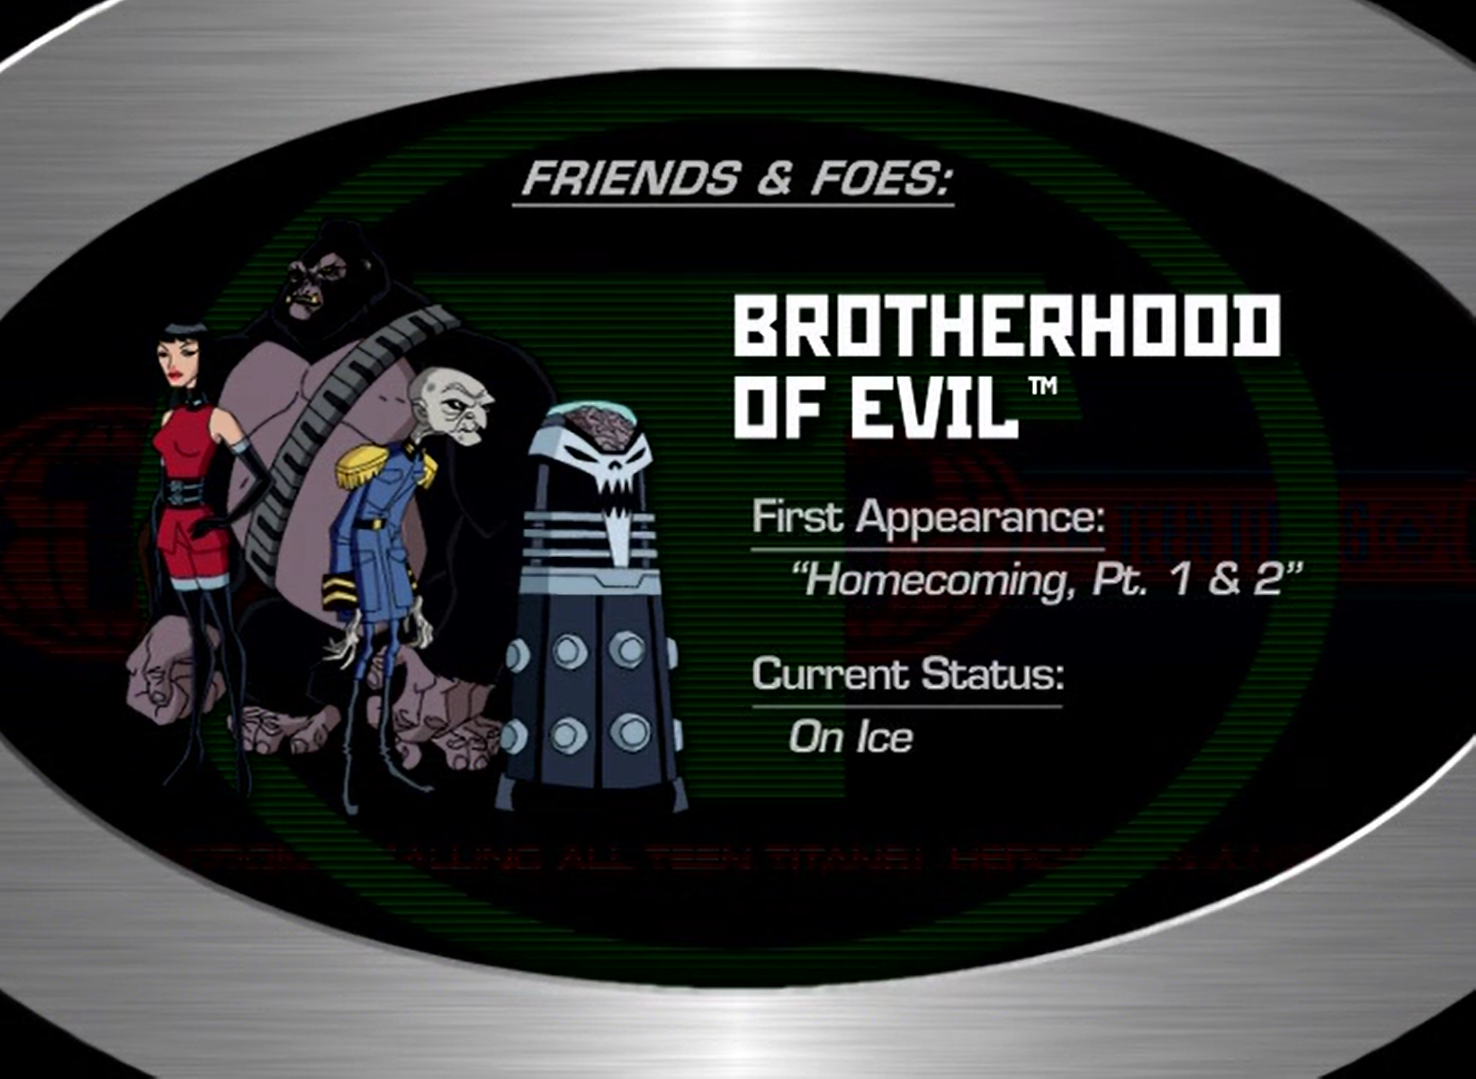 Brotherhood of Evil